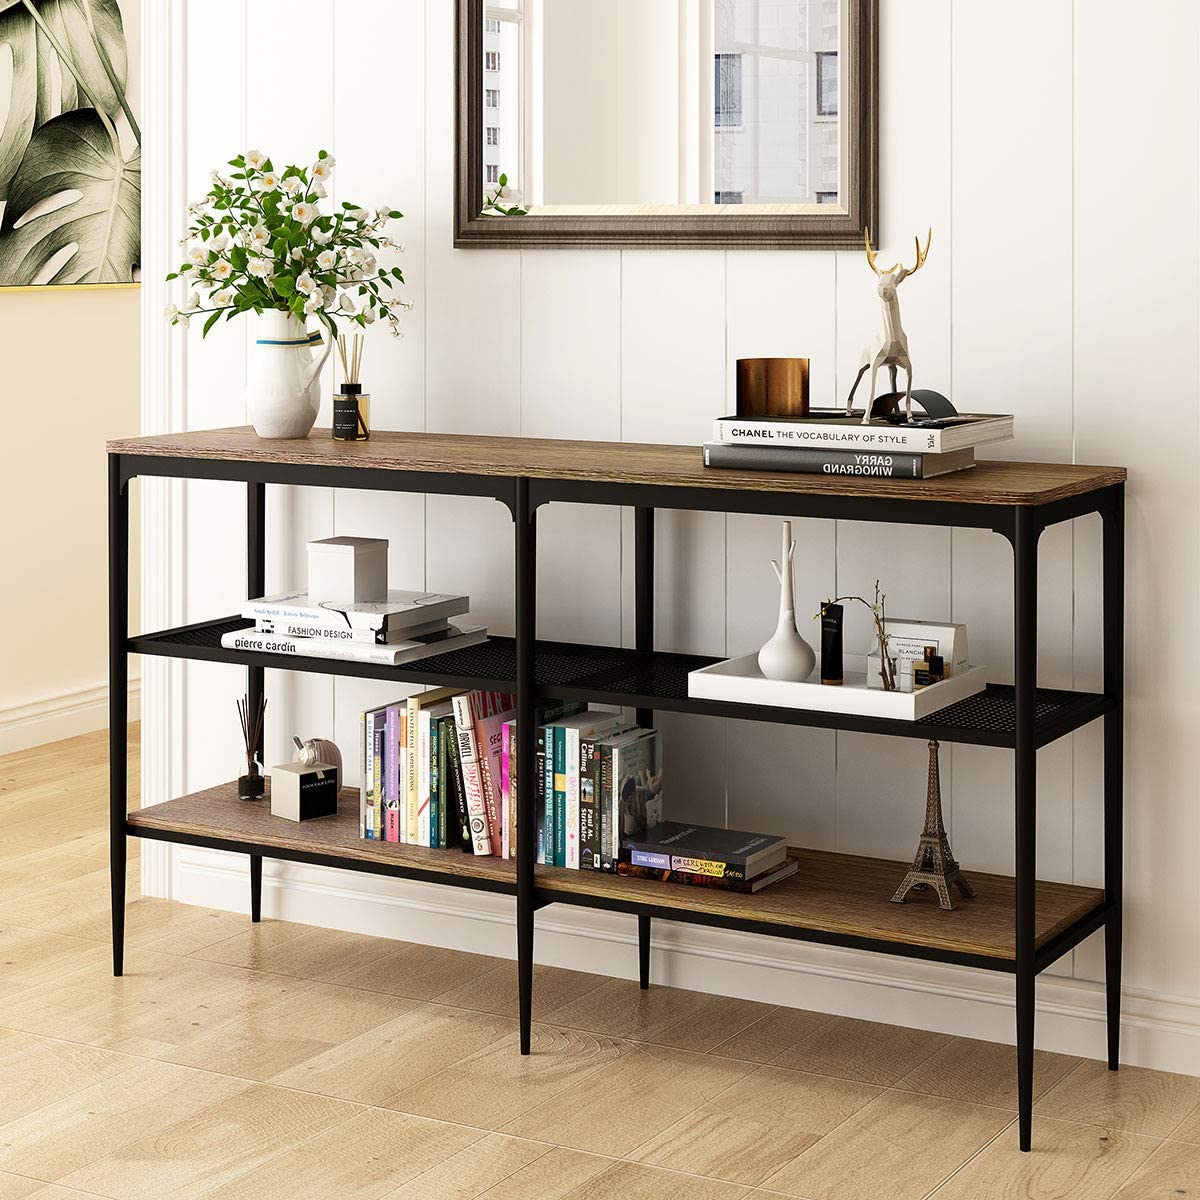 O&K Furniture Industrial Sofa Console Table for Living Room, Entry Table with Open Shelves, Entryway/Hallway Hall Table, Rustic Brown